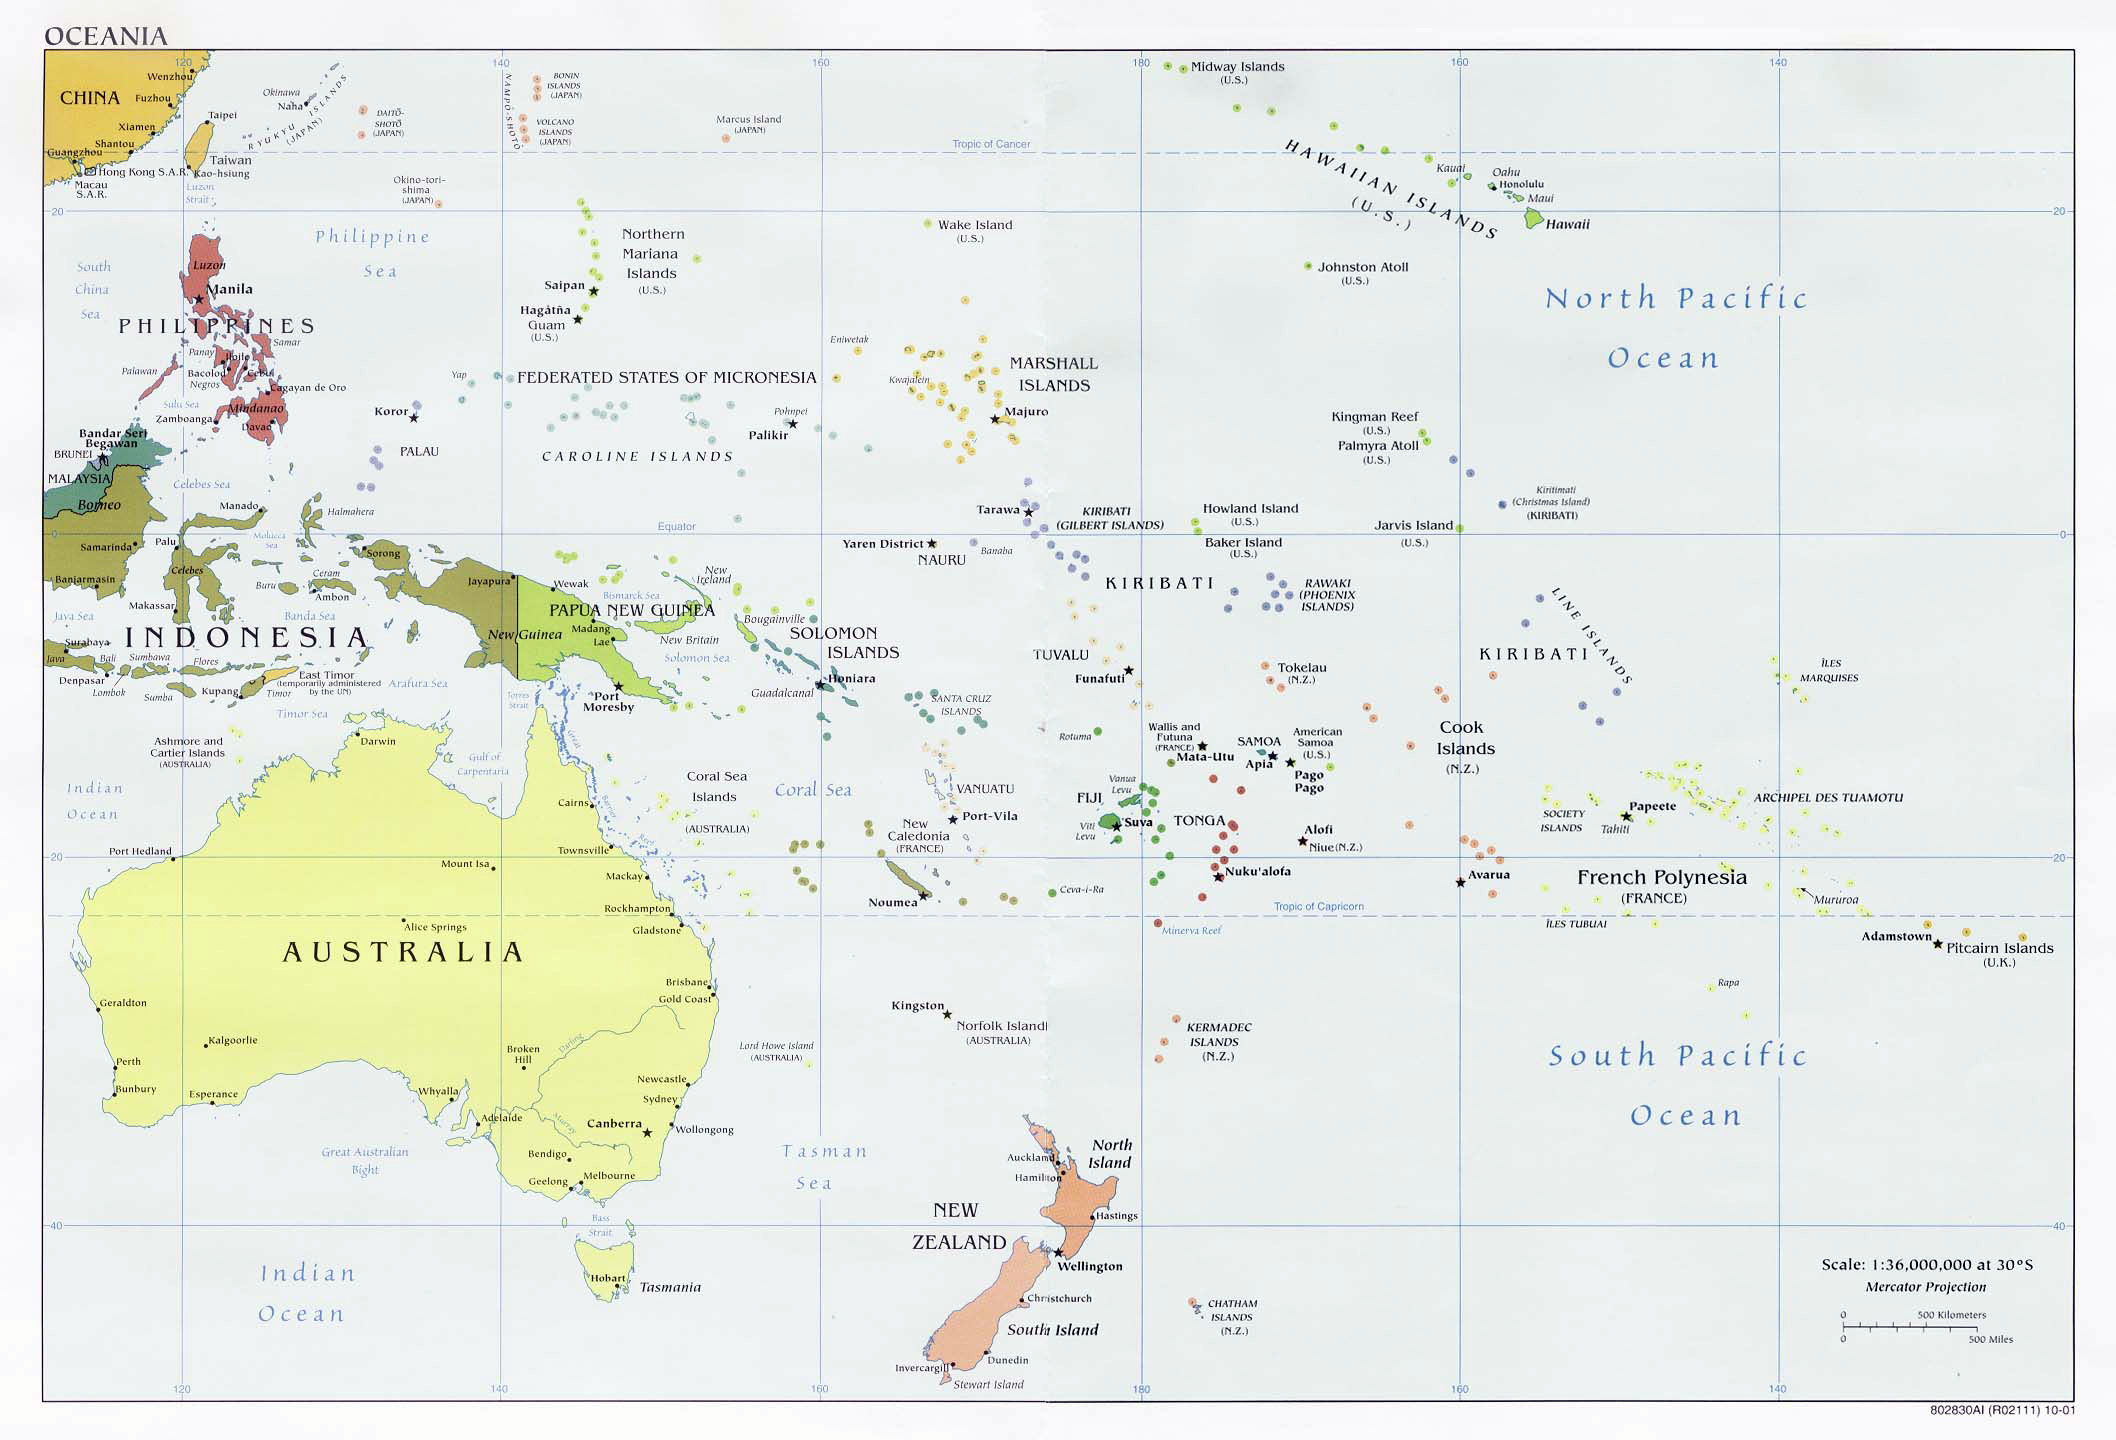 Australia and Oceania detailed political map Detailed political map of Austr